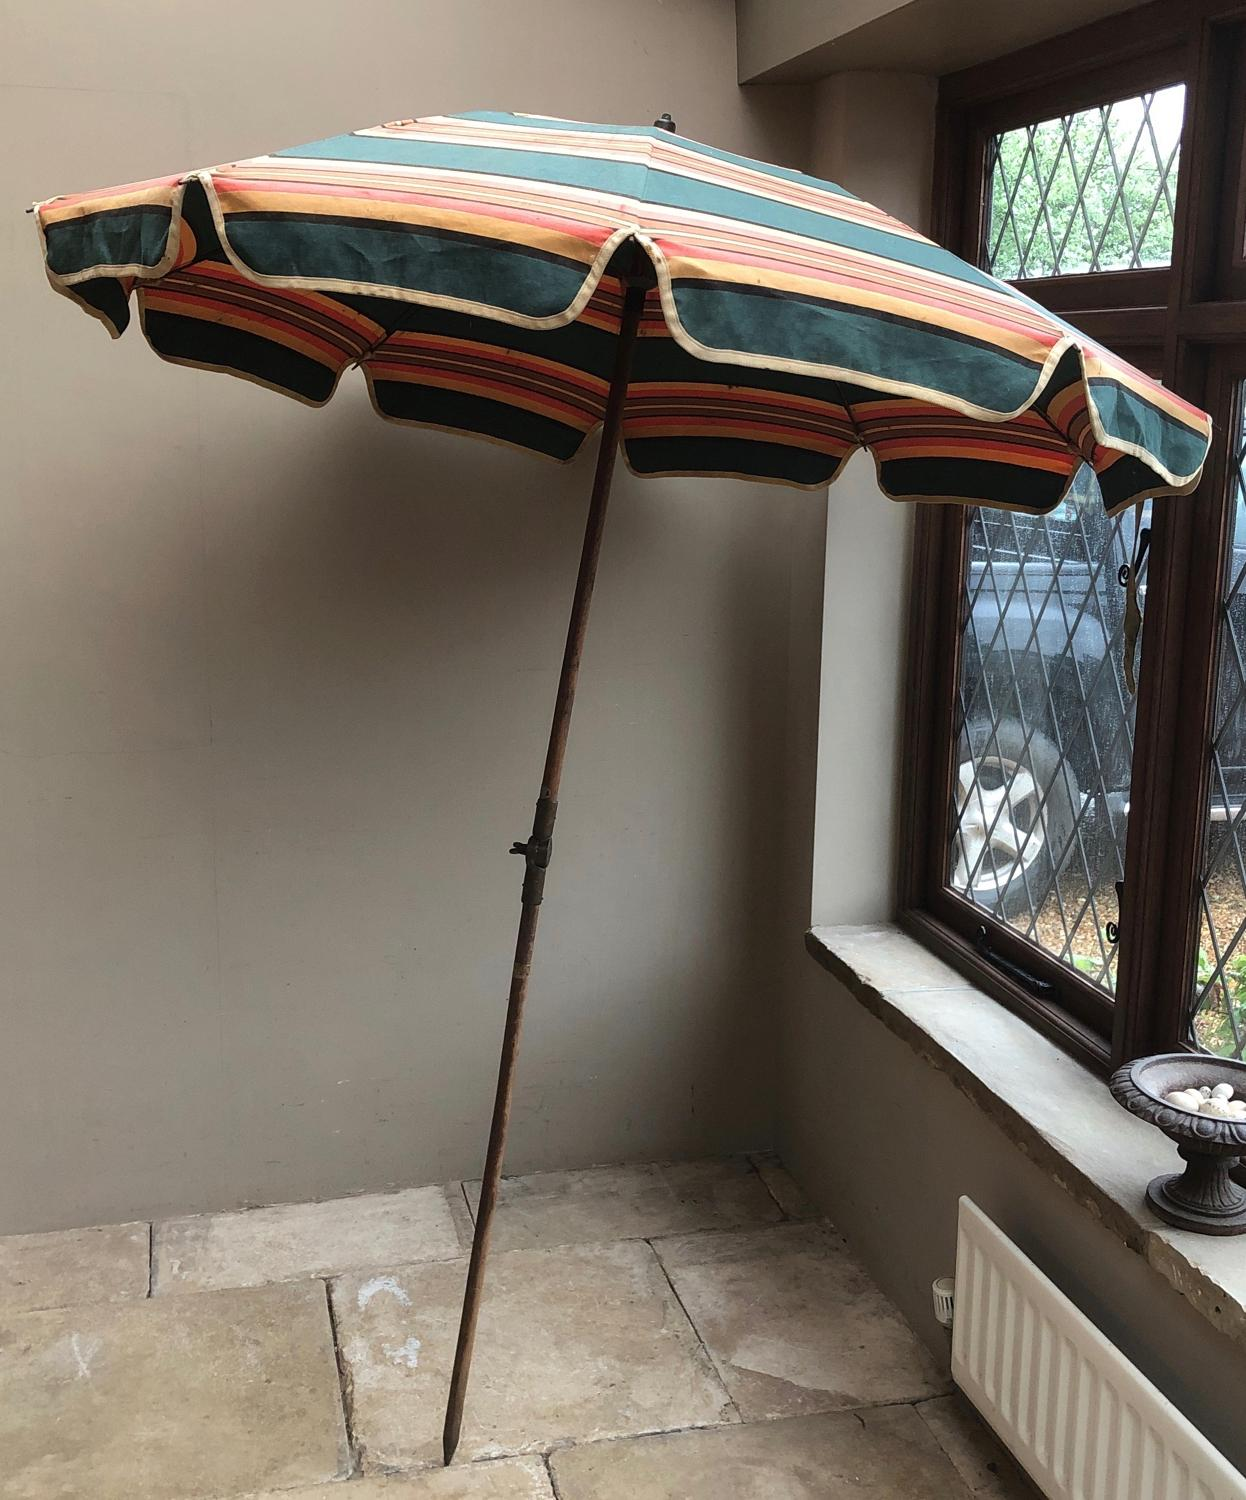 Superb Antique Travelling Garden or Beach Parasol